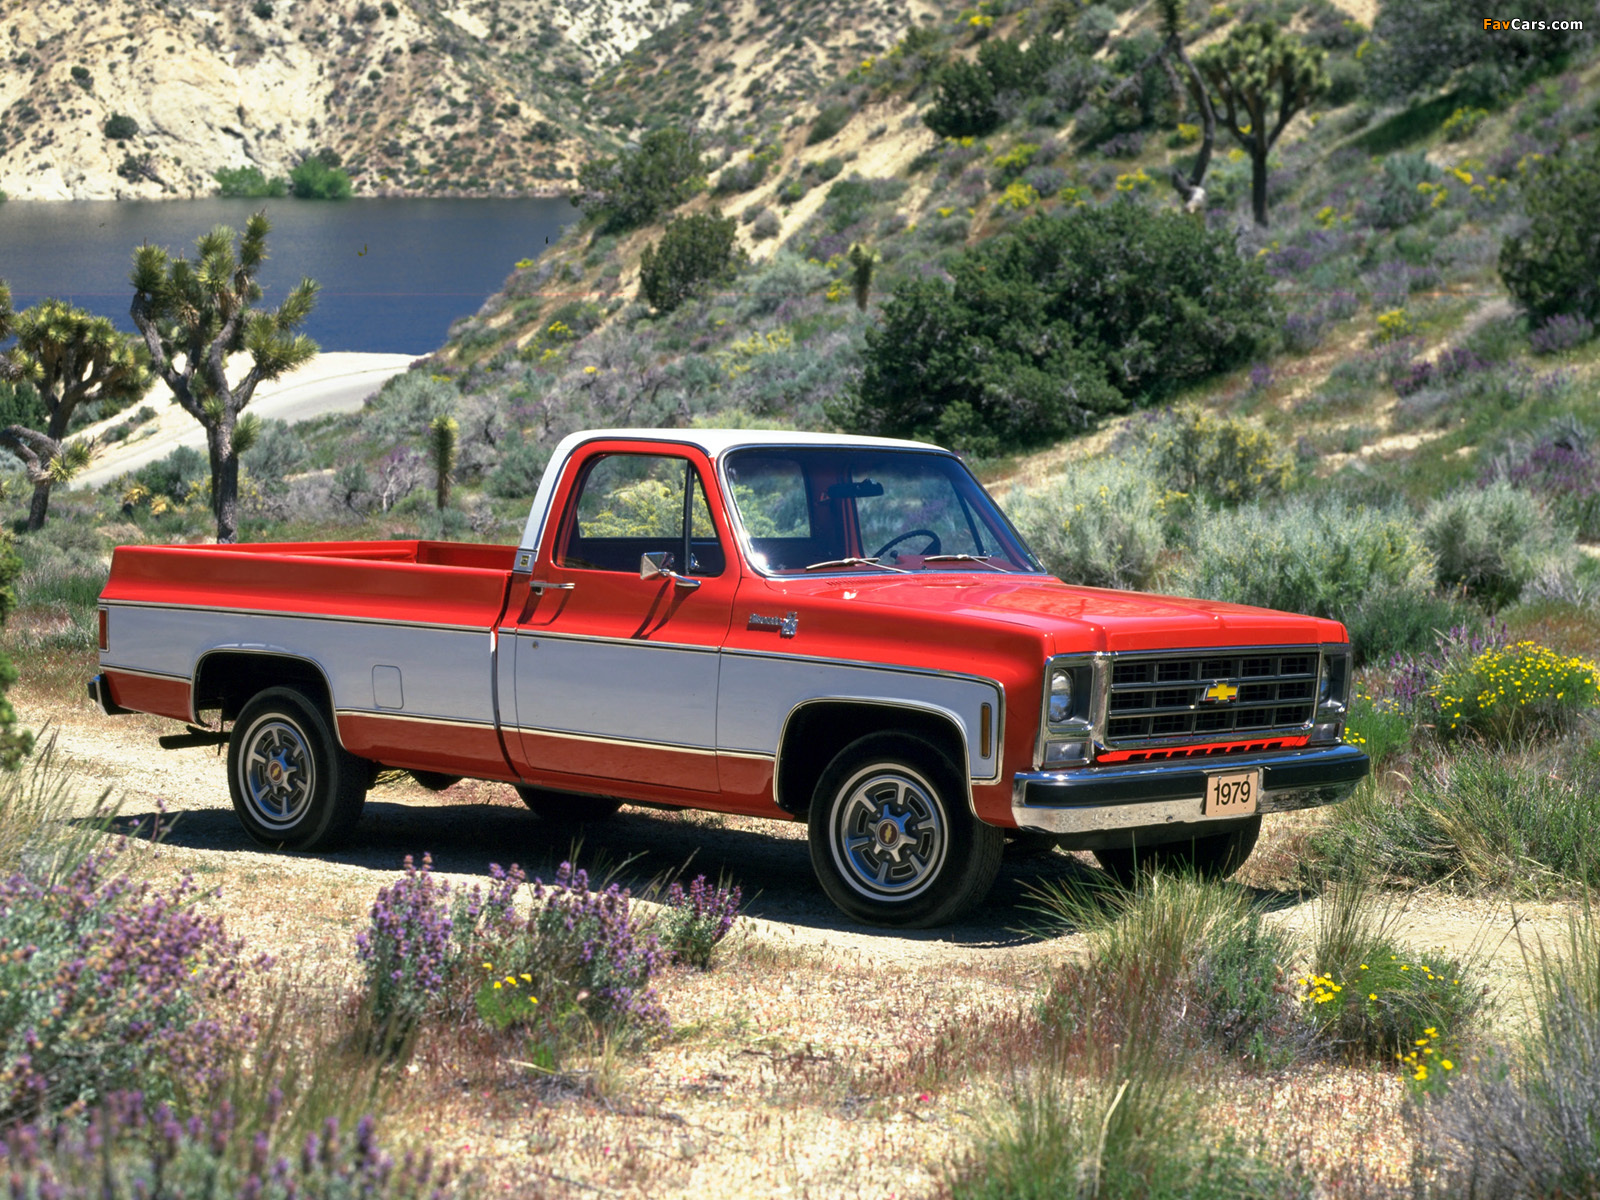 New Chevy Trucks >> Chevrolet 20 Silverado Fleetside 1979 pictures (1600x1200)